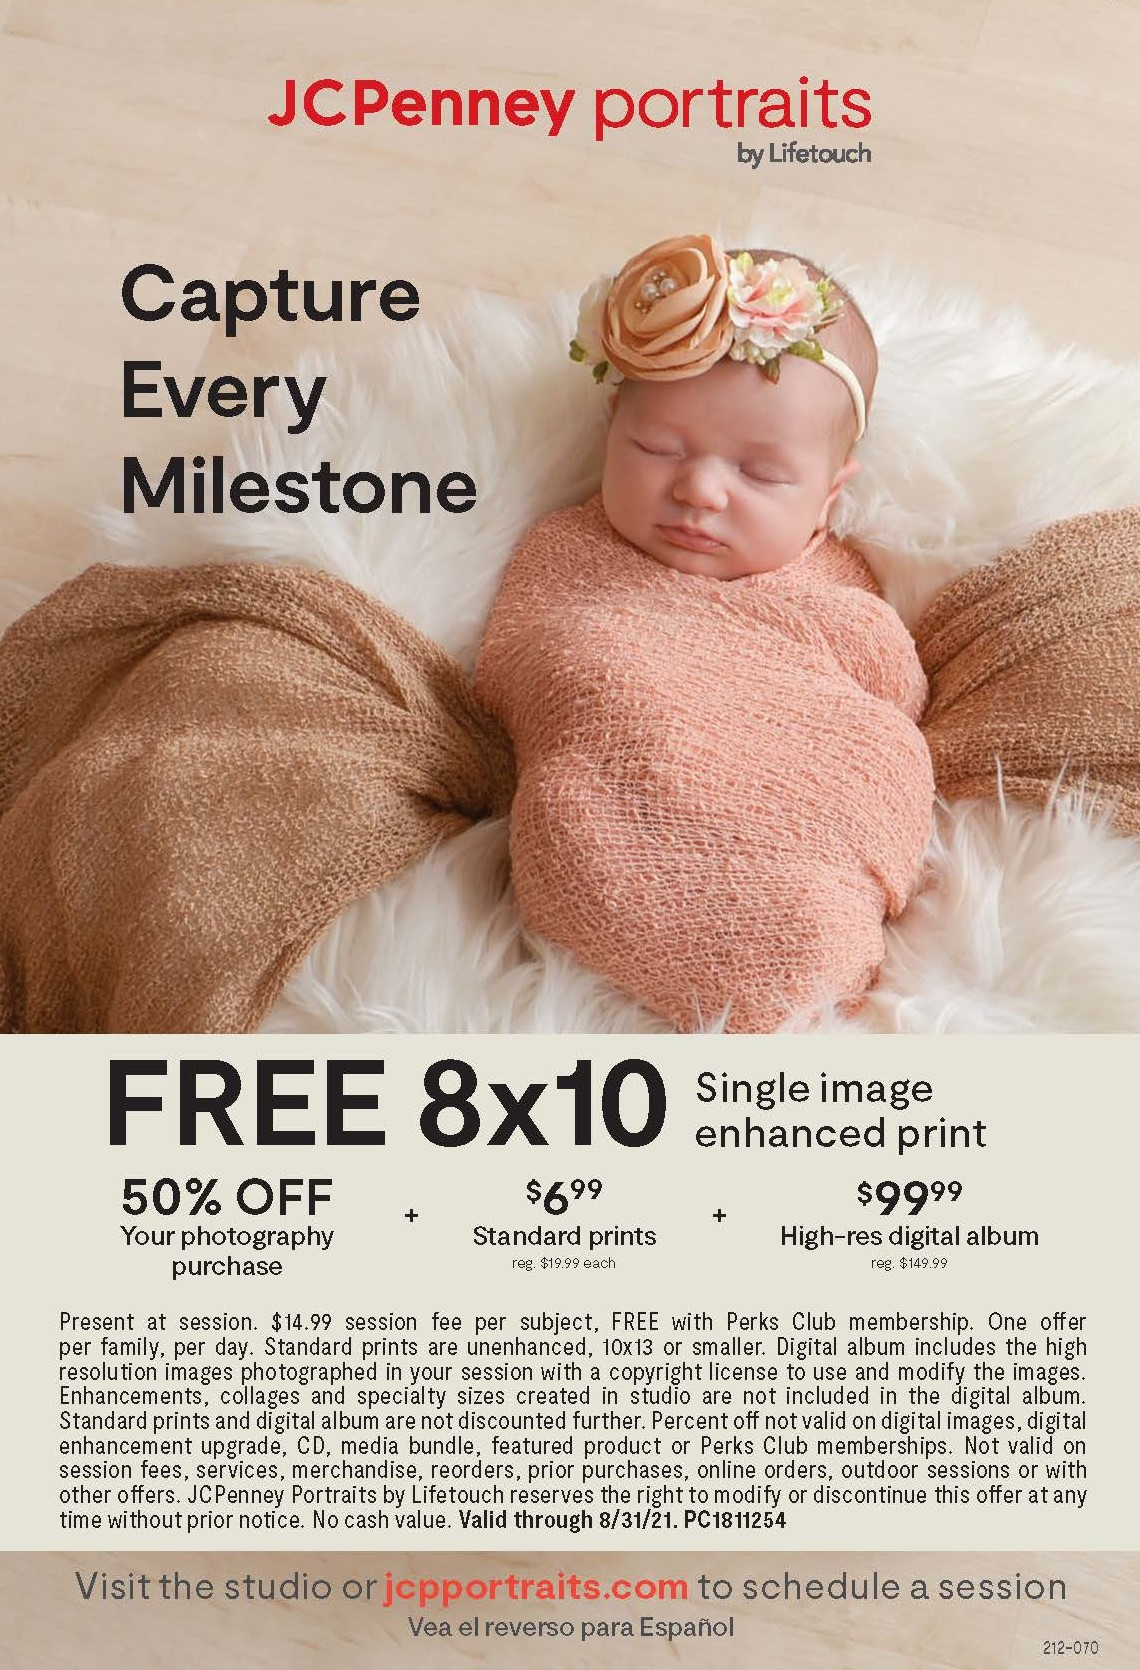 Free 8x10 Single Image from JCPenney